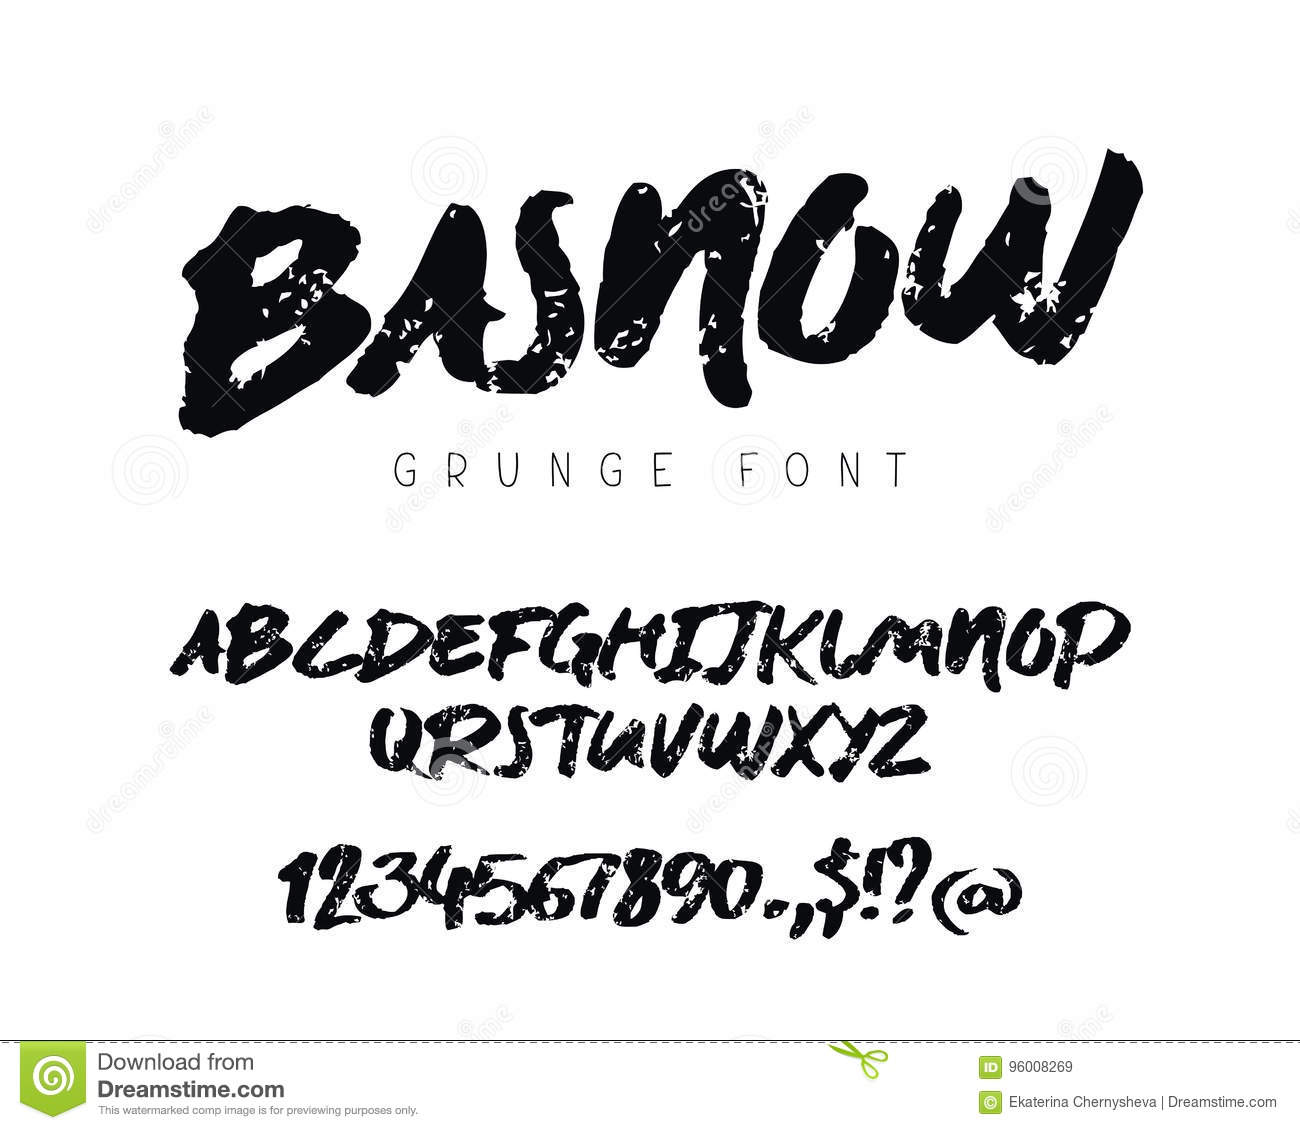 Grunge Font Stock Vector Illustration Of Distressed Text 9022158